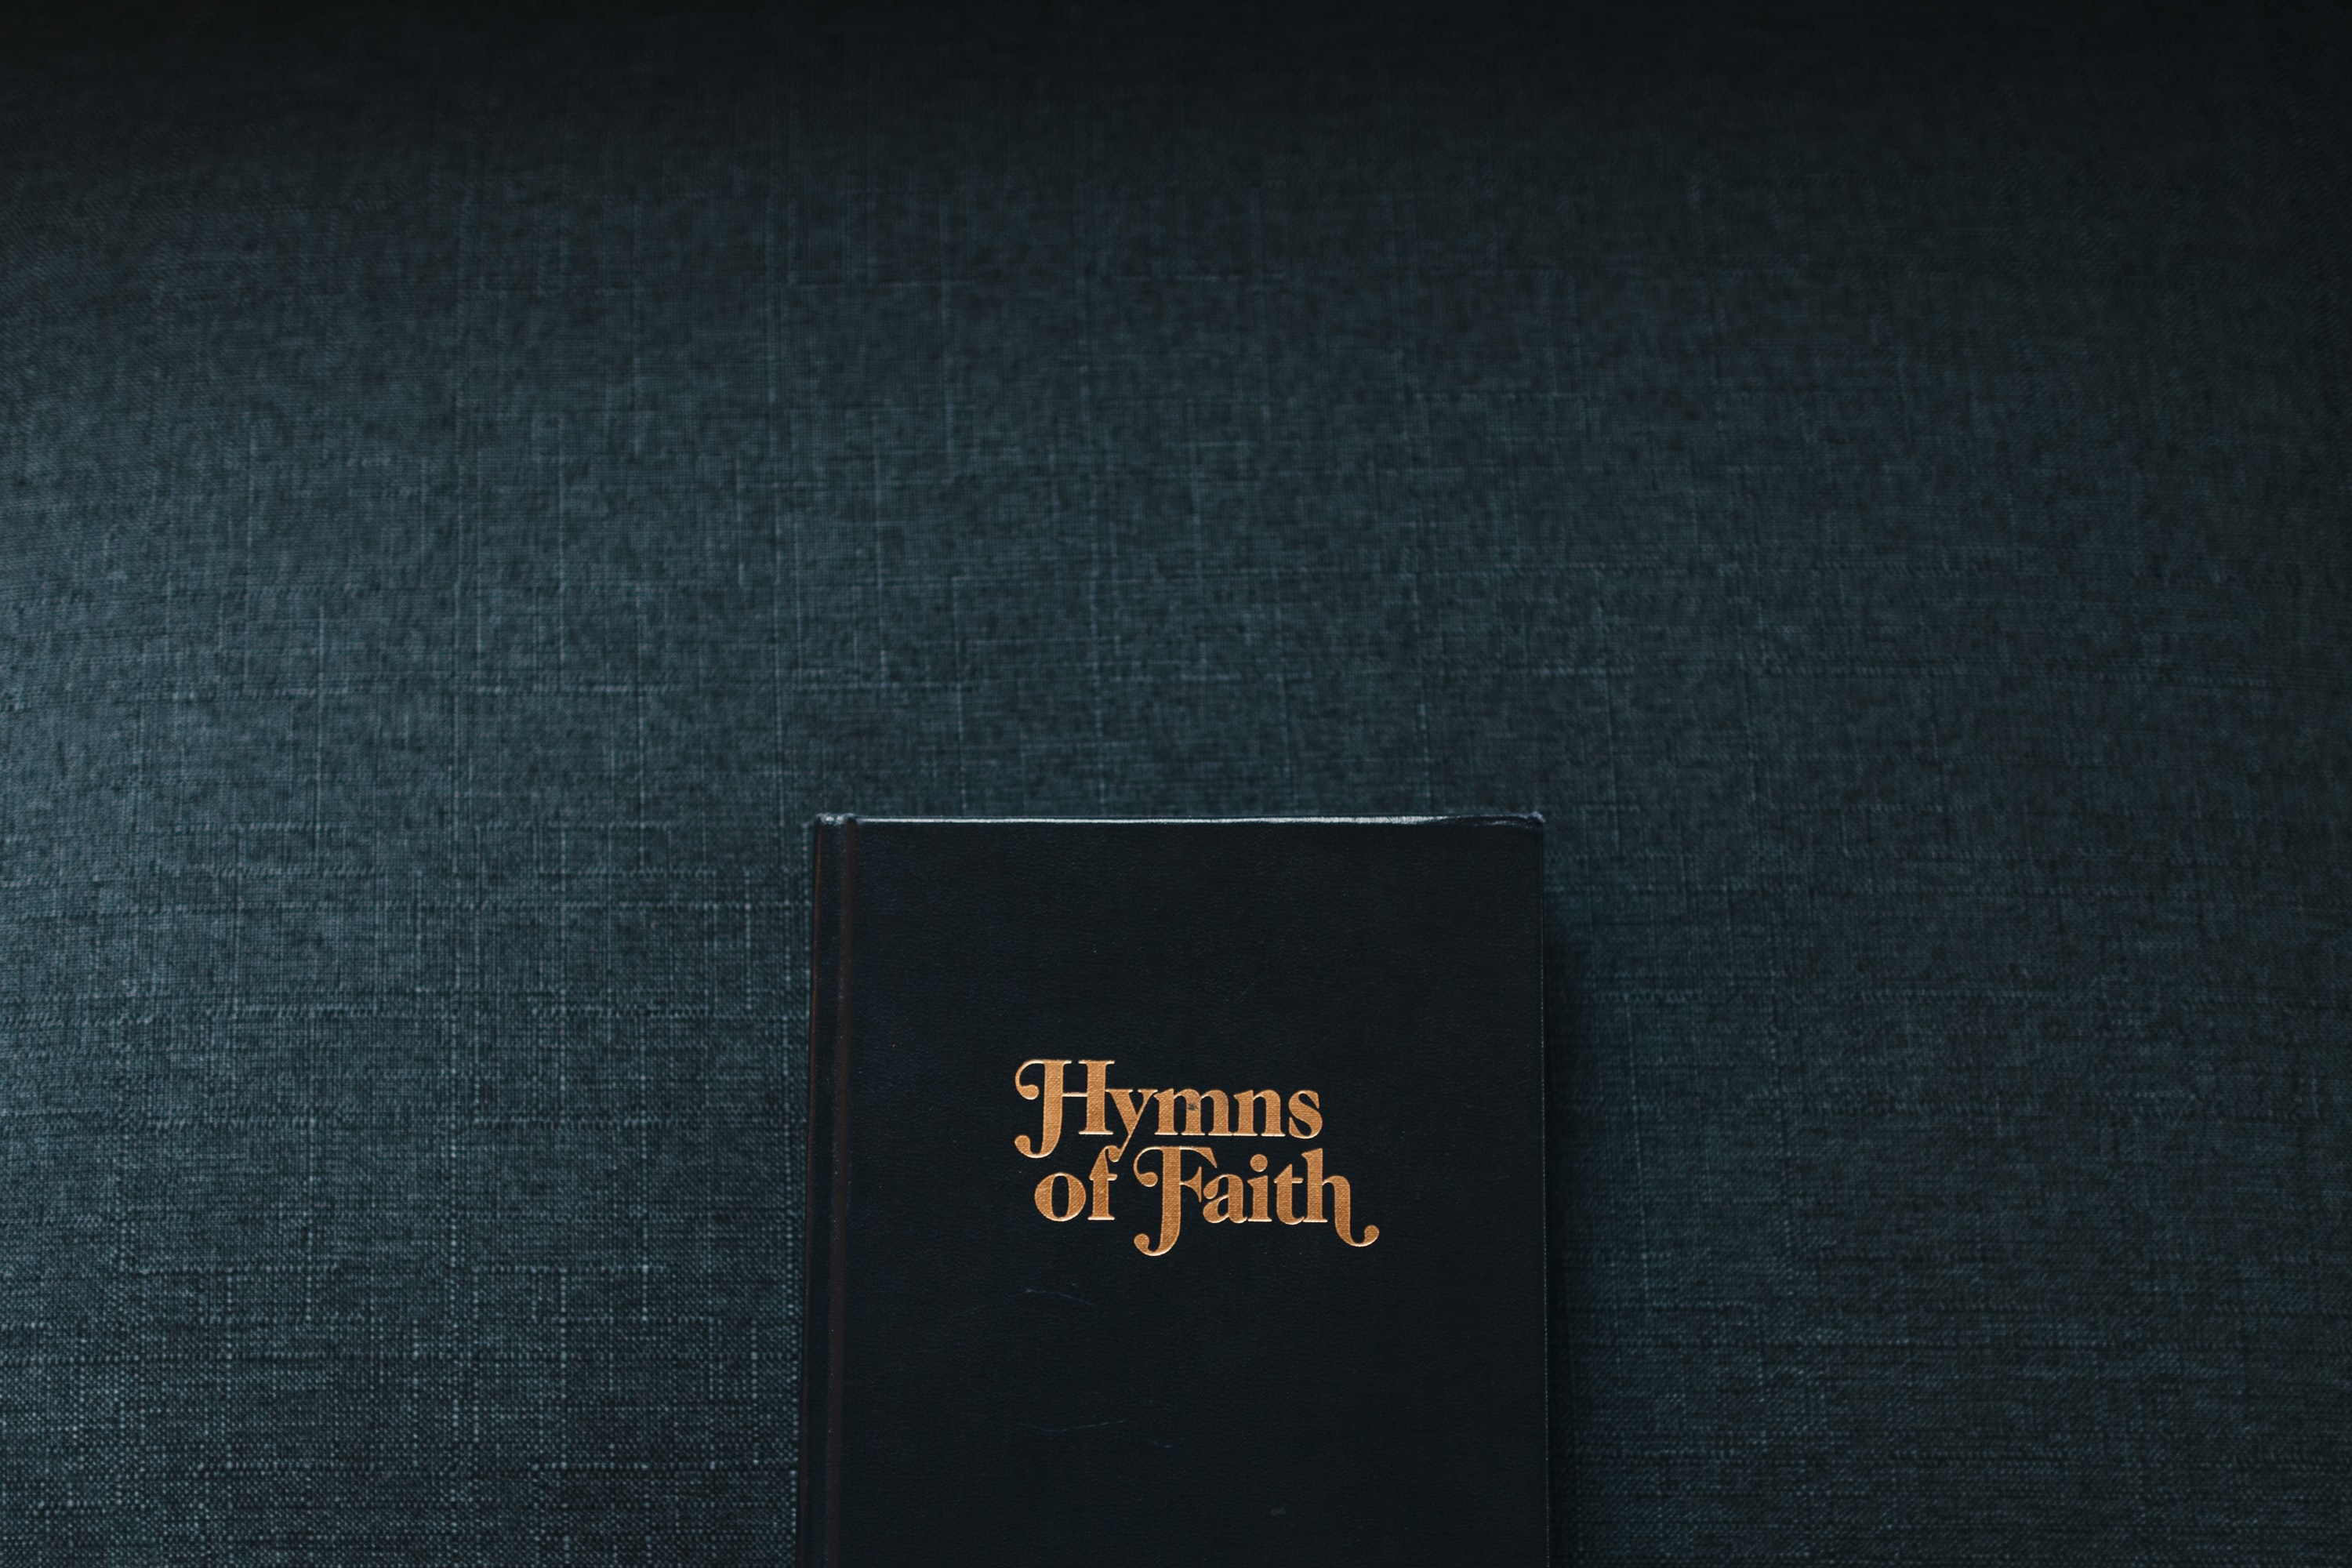 Hymns of Faith book